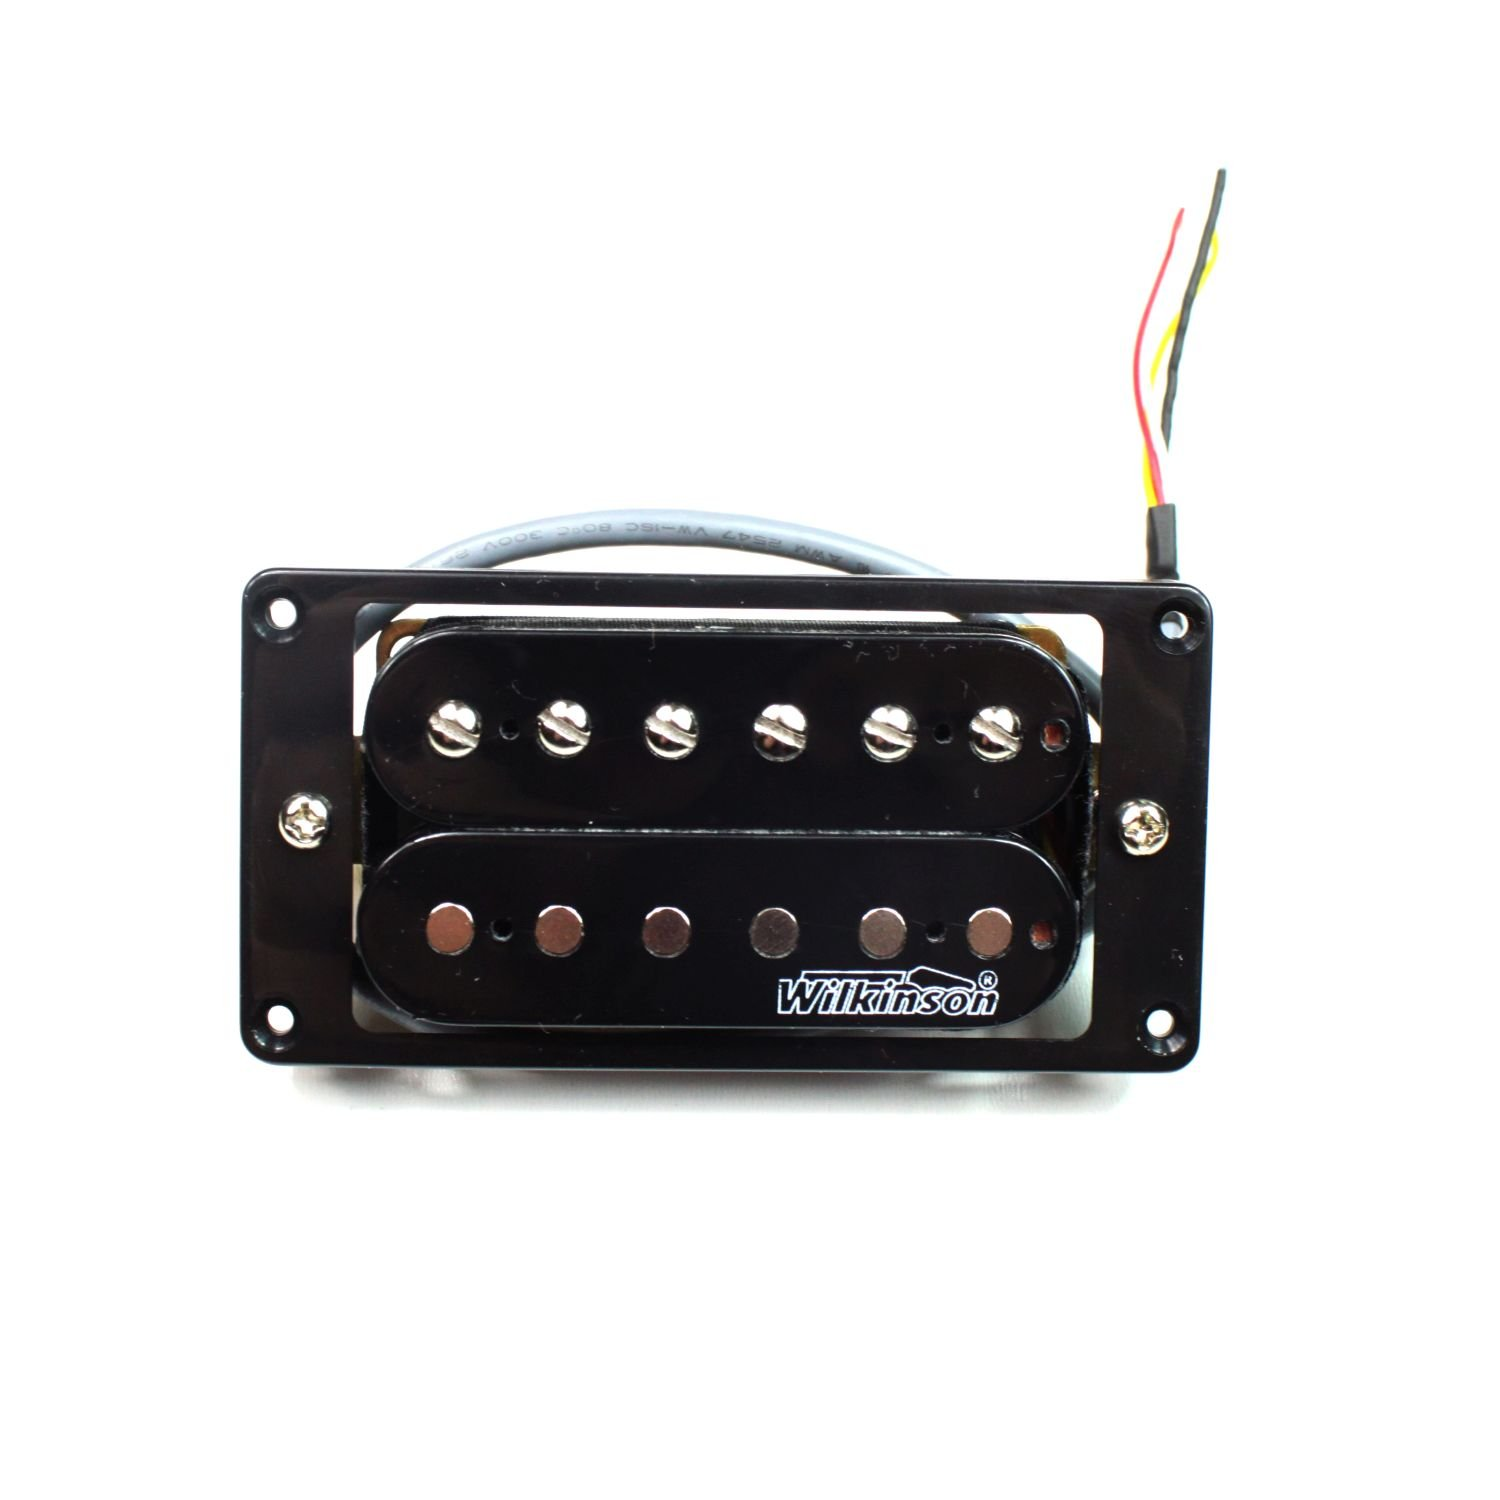 Wilkinson Pickup Wiring Diagram Jackson Guitar Mwhbn Electric Neck Humbucker Black High Rh Amazon Co Uk Single Coil